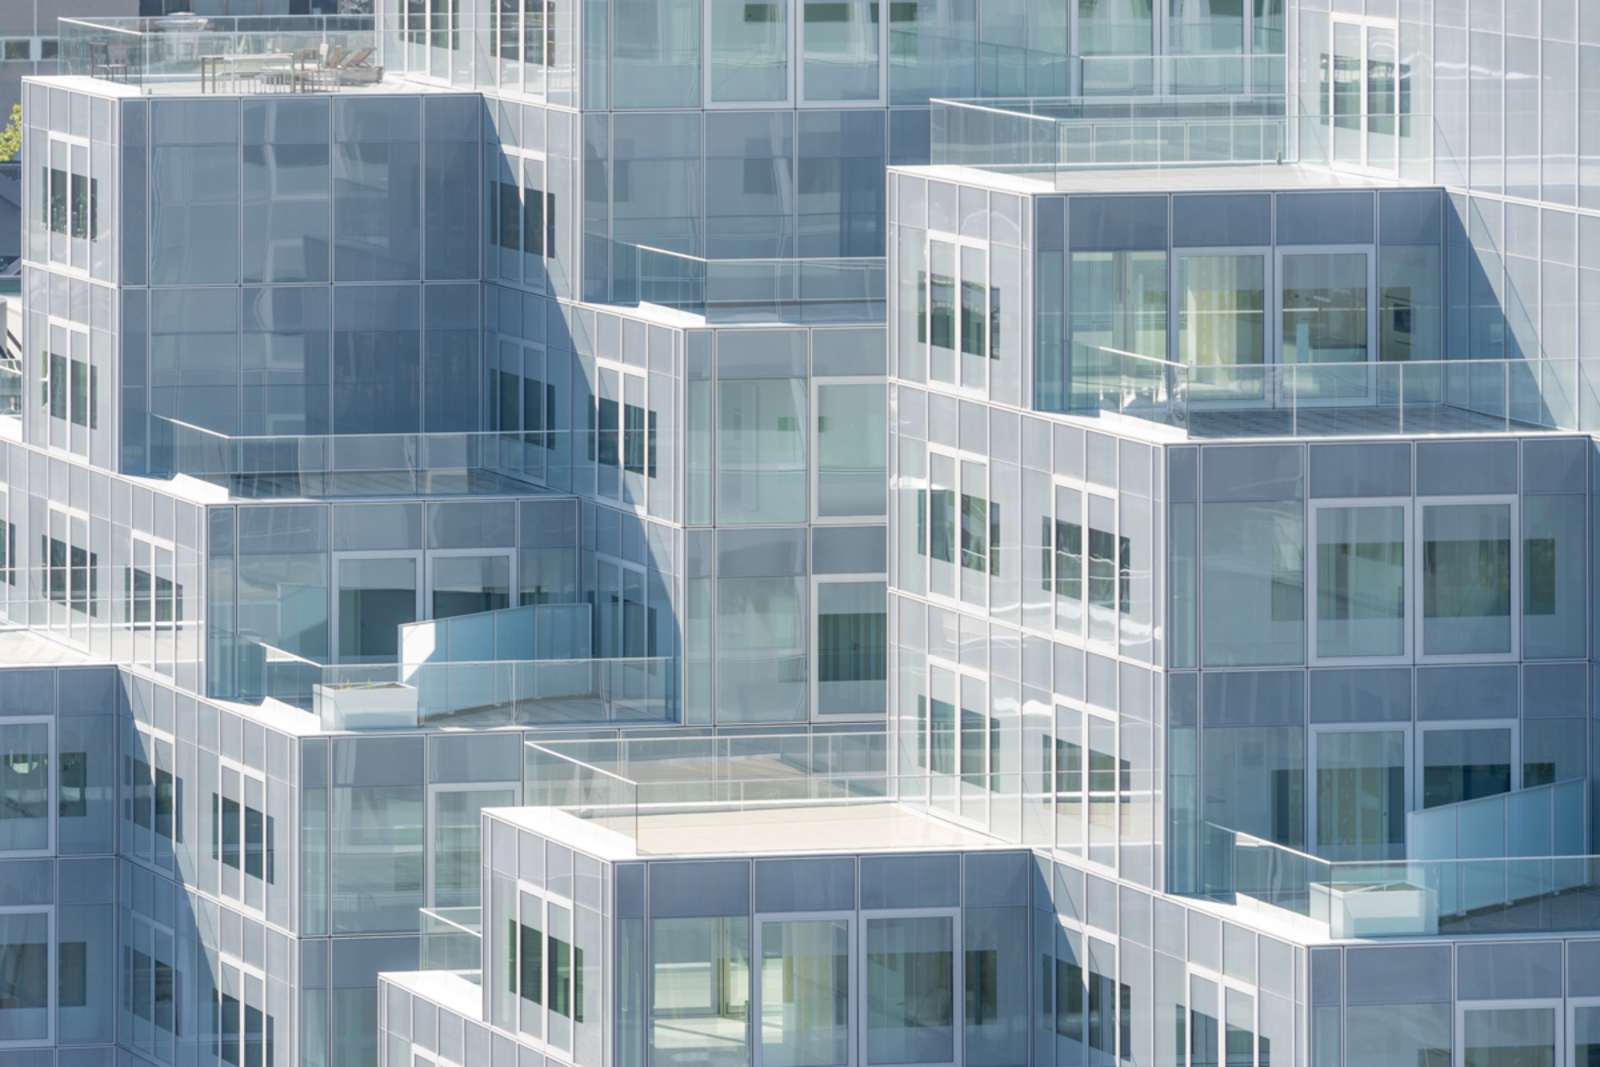 Timmerhuis by by Ossip